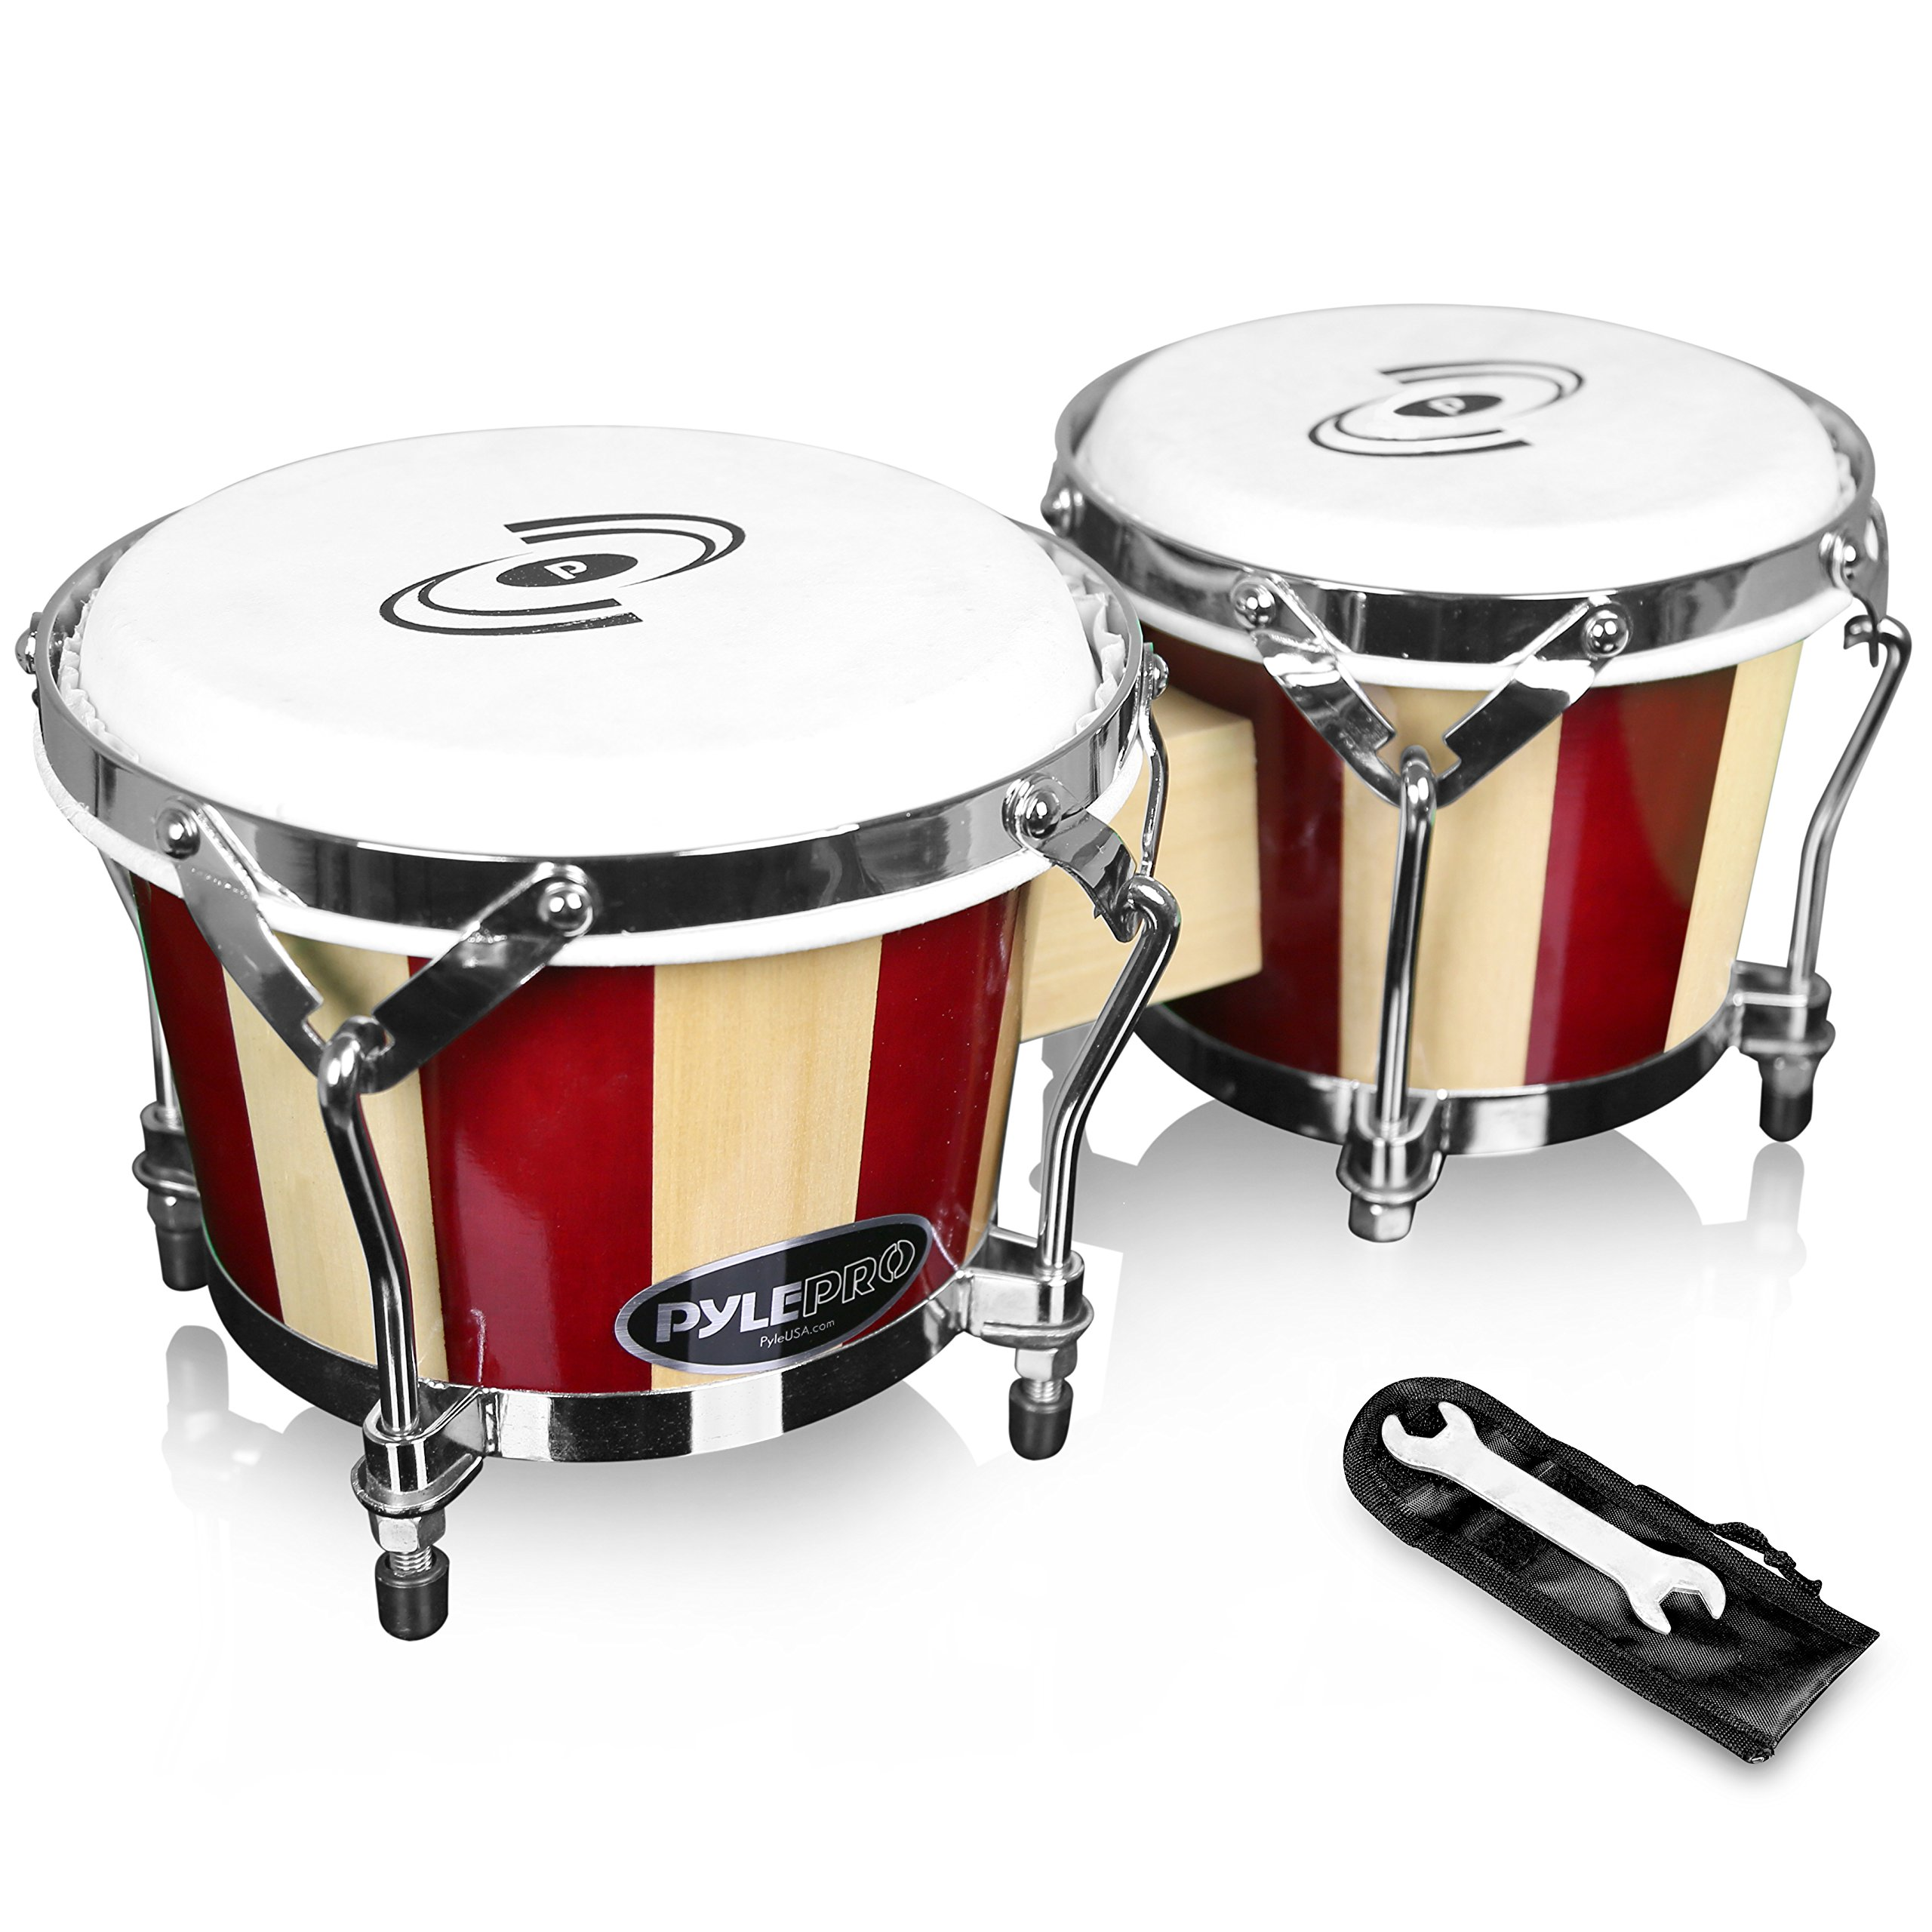 Pyle Hand Crafted Bongo Drums - Pair of Wooden Bongo Drums, 6.5 & 7.5 Inch - PBND10 by Pyle